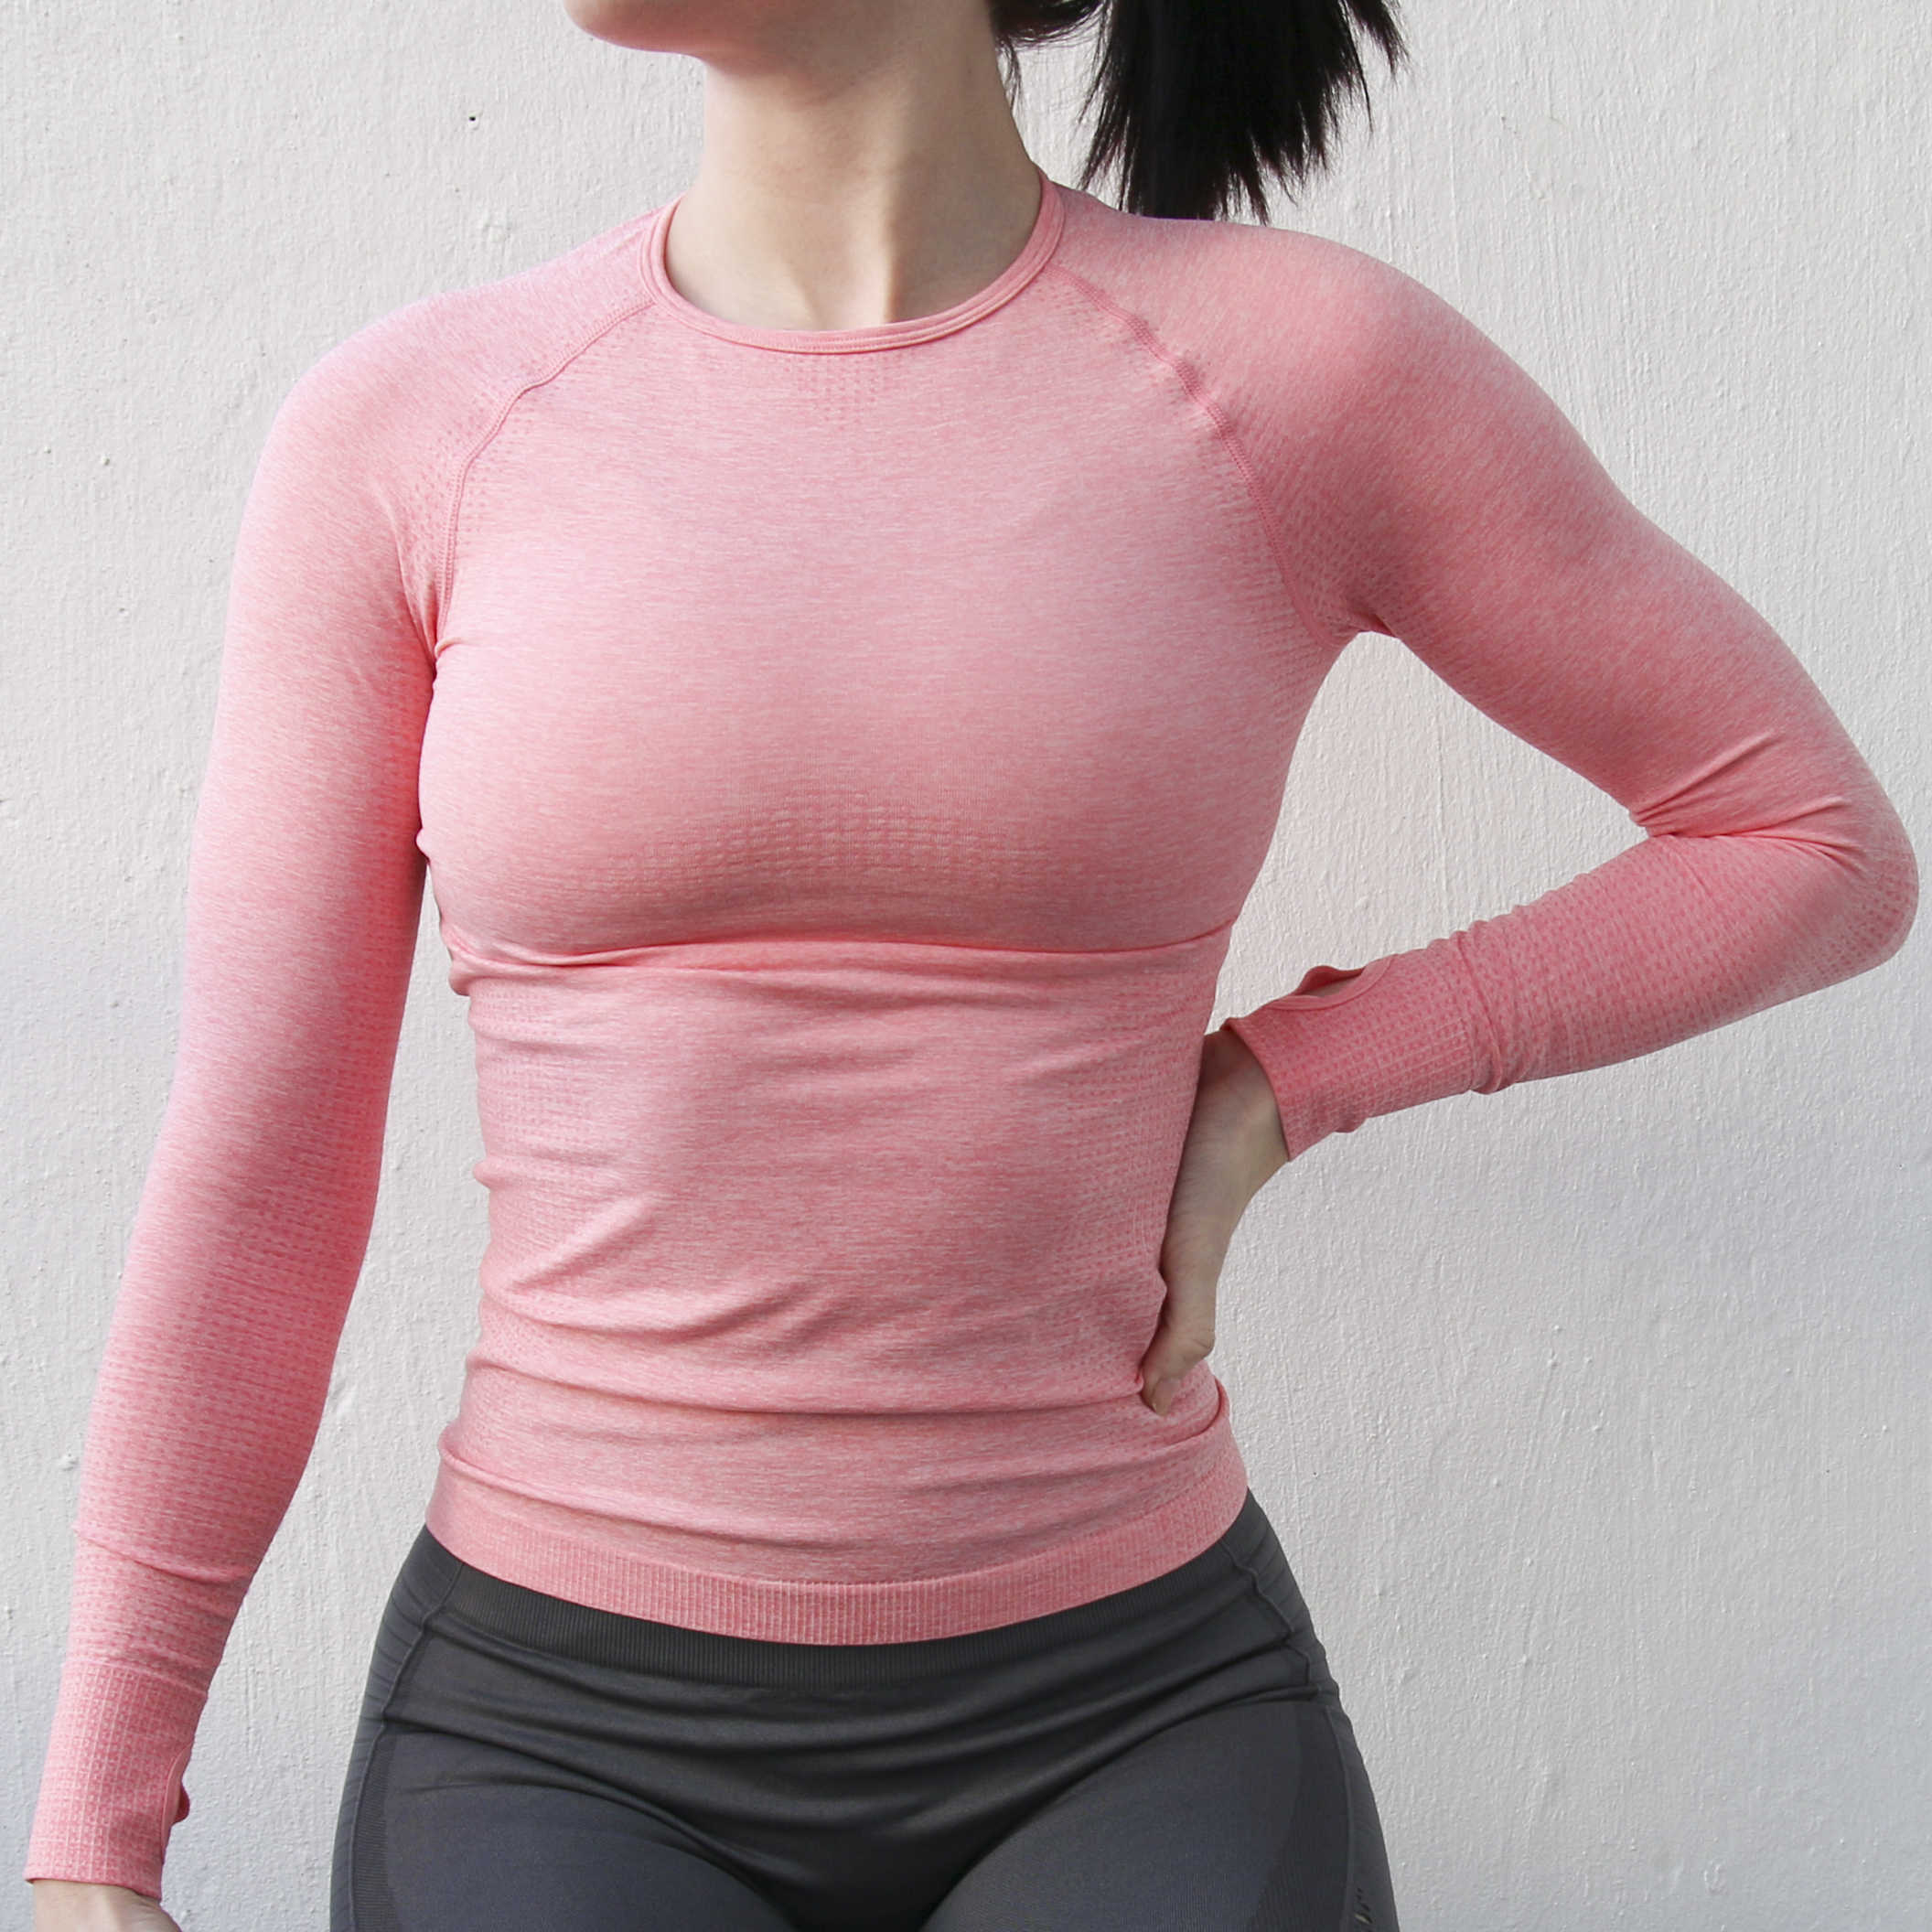 Nepoagym Women High Stretch Comfort Sport Seamless Long Sleeve Top Women Gym Tops Fitness Women Sexy Shirt Women Jersey